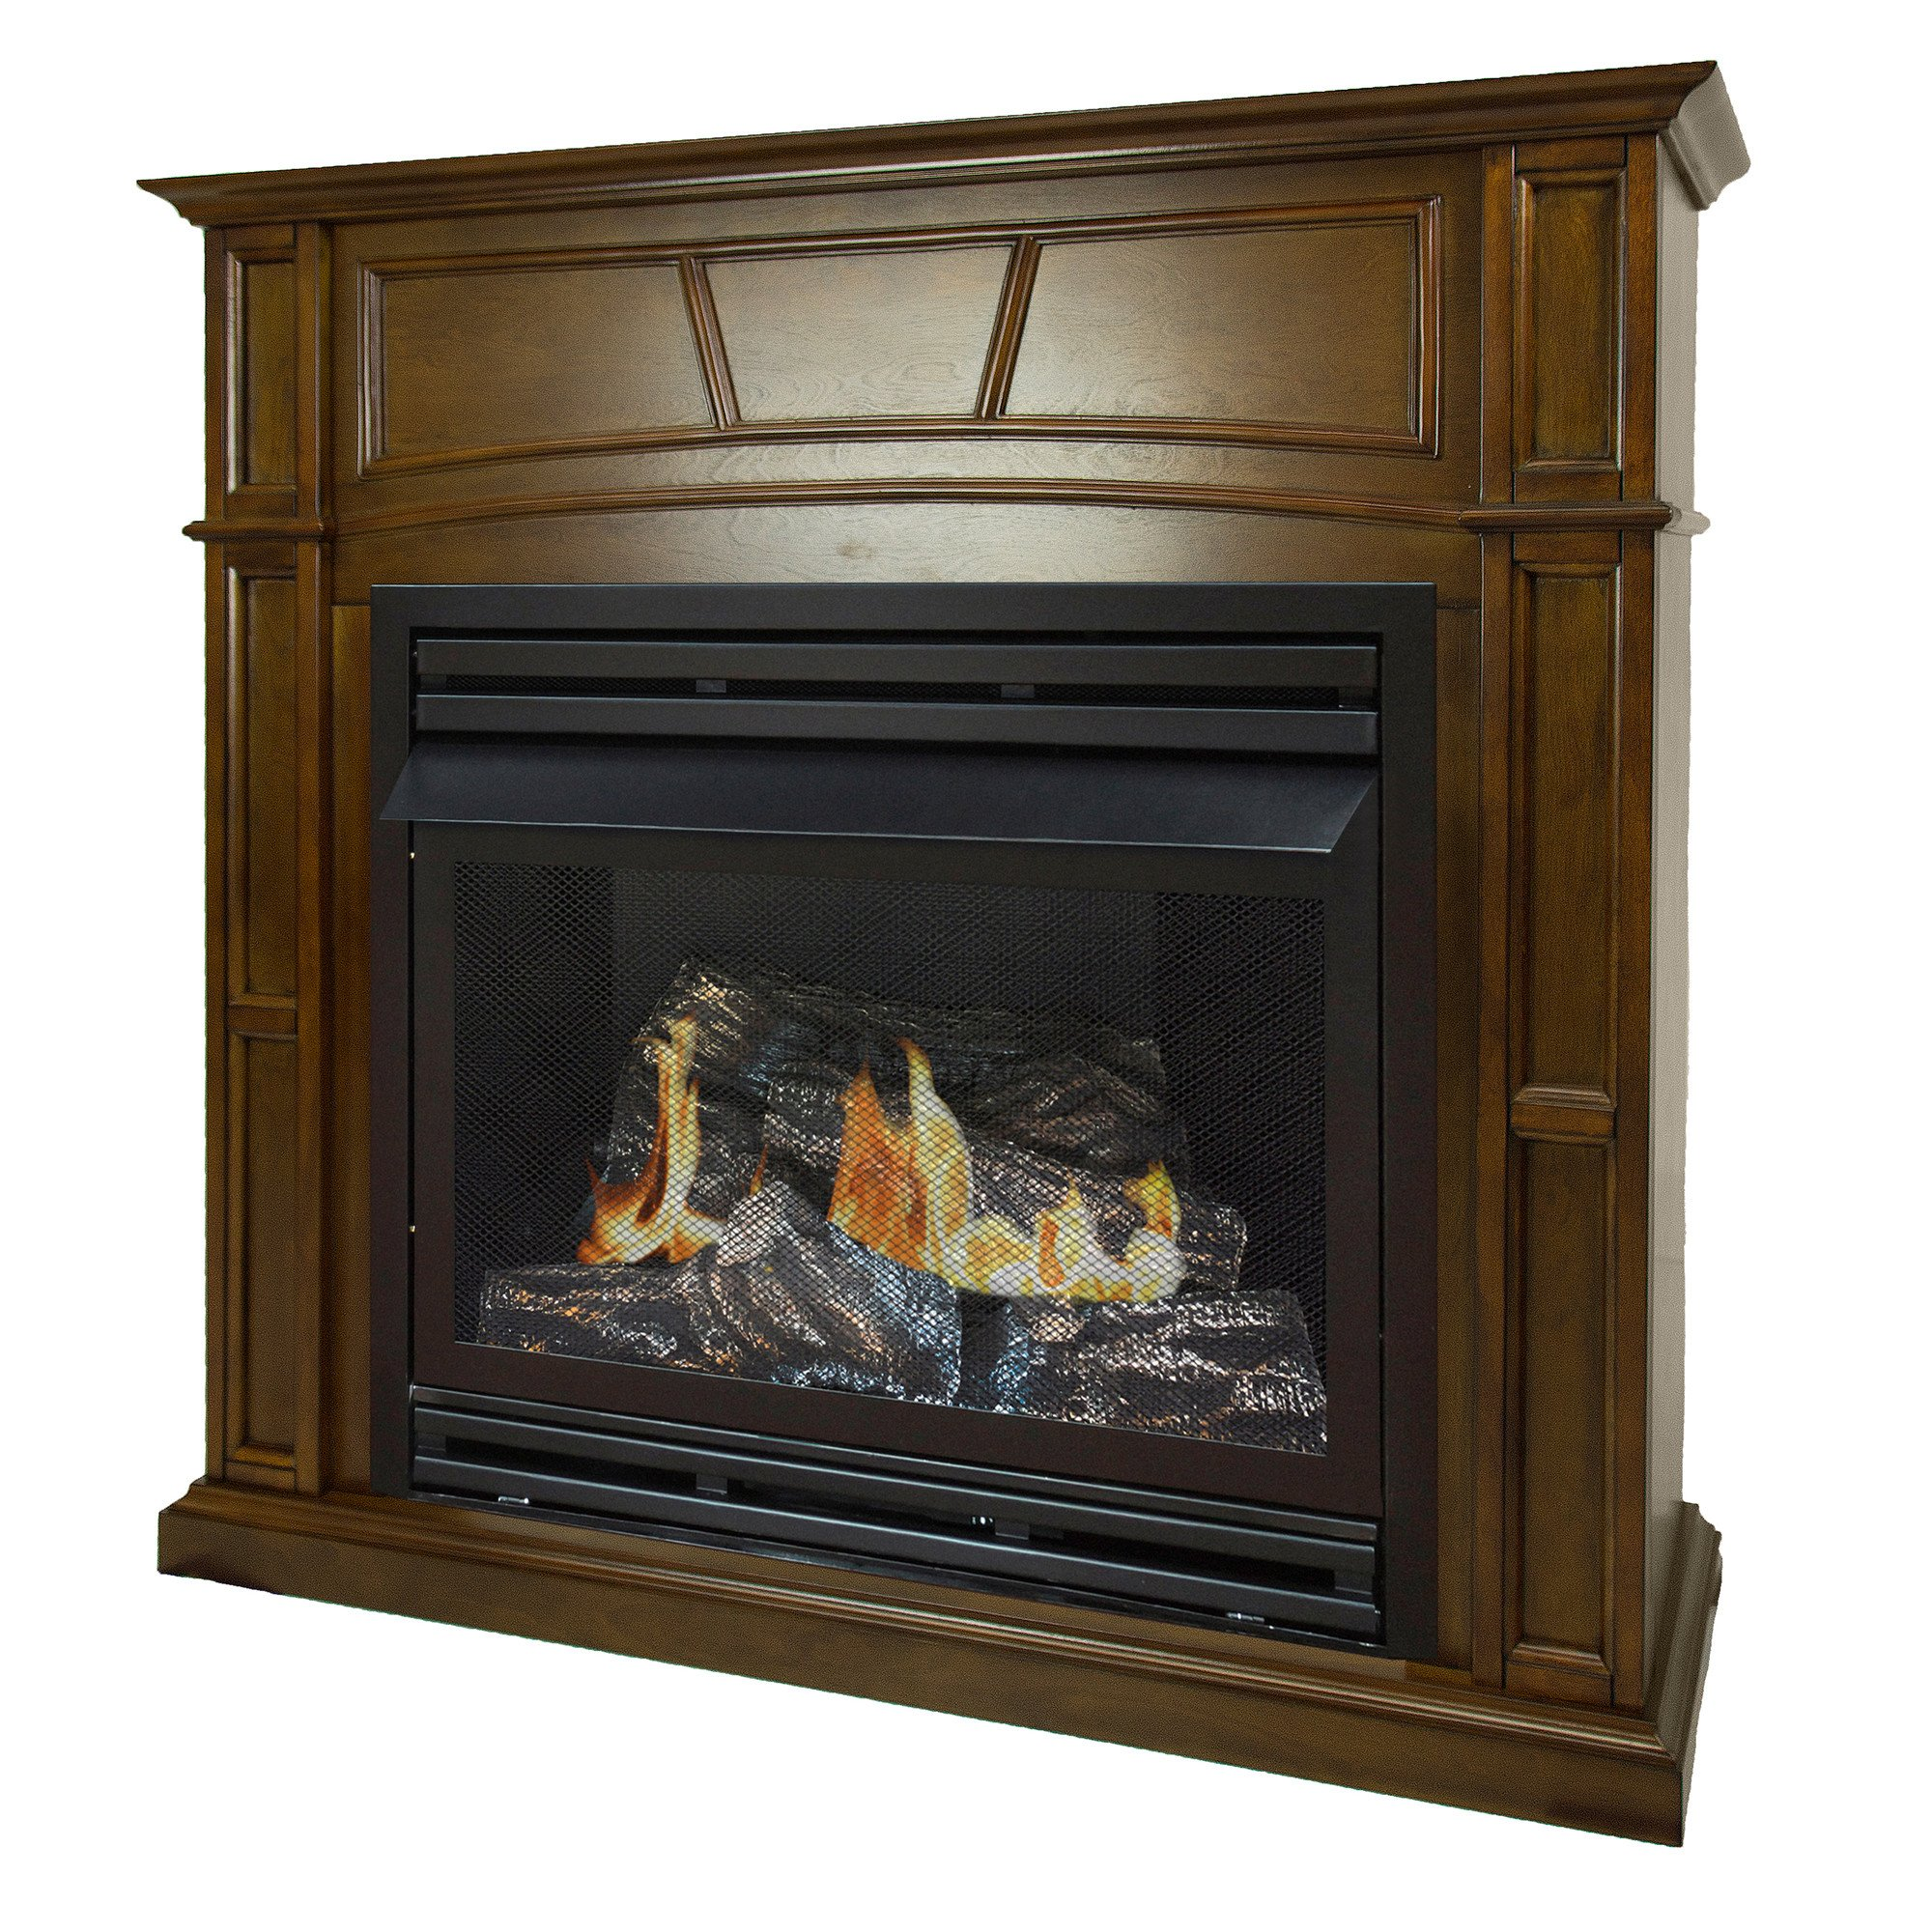 Pleasant Hearth 46 Full Size Natural Gas Vent Free Fireplace System 32,000 BTU, Rich Heritage by Pleasant Hearth